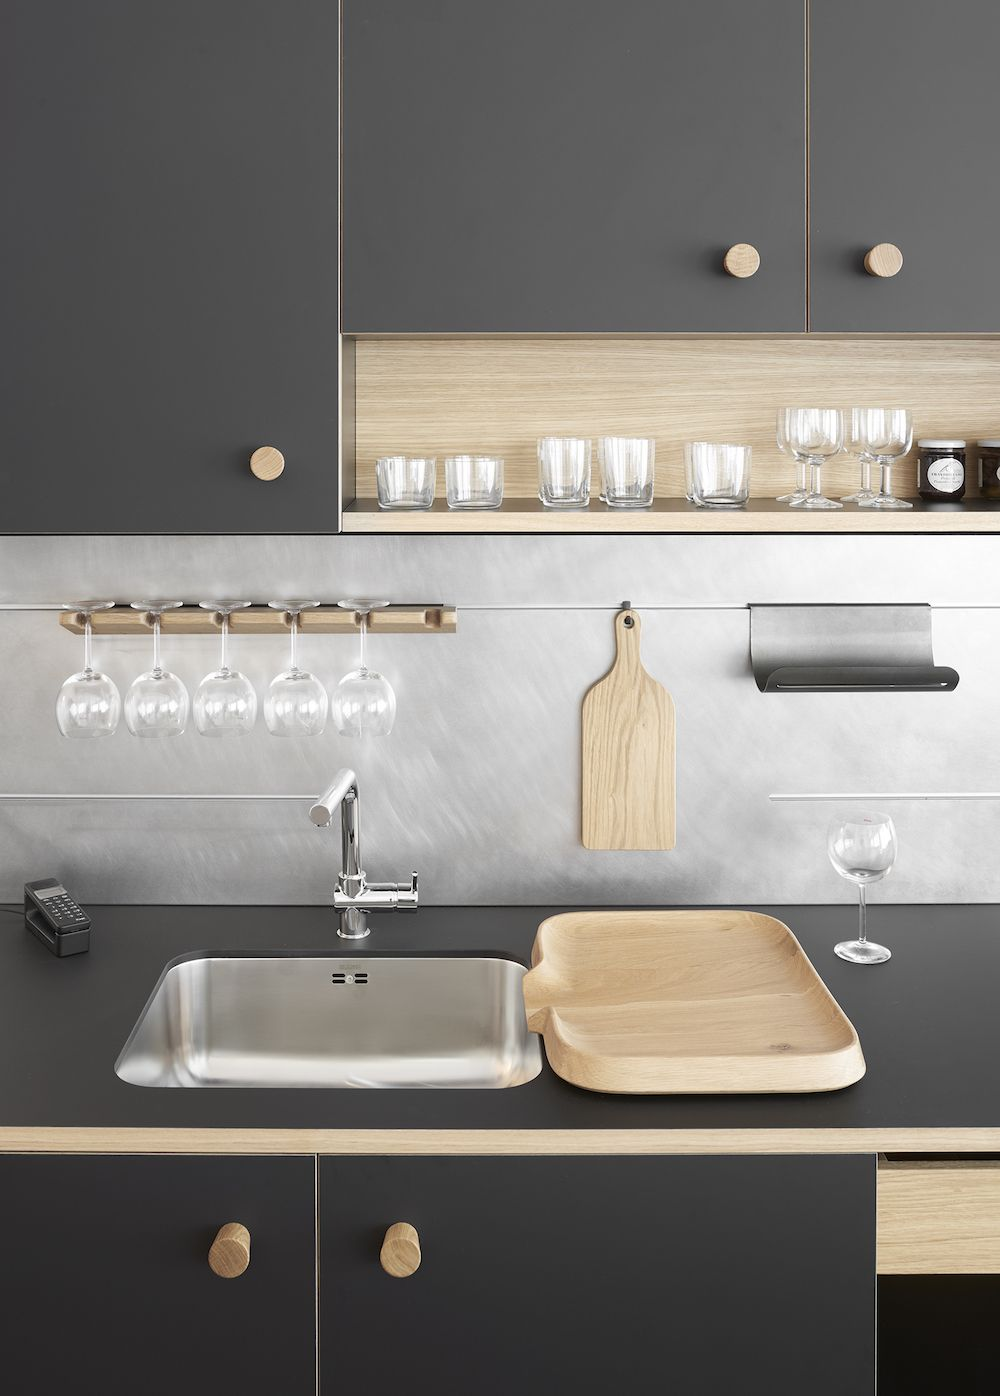 Schiffini Kuche Kitchen Of The Week Jasper Morrison S First Modular Kitchen For